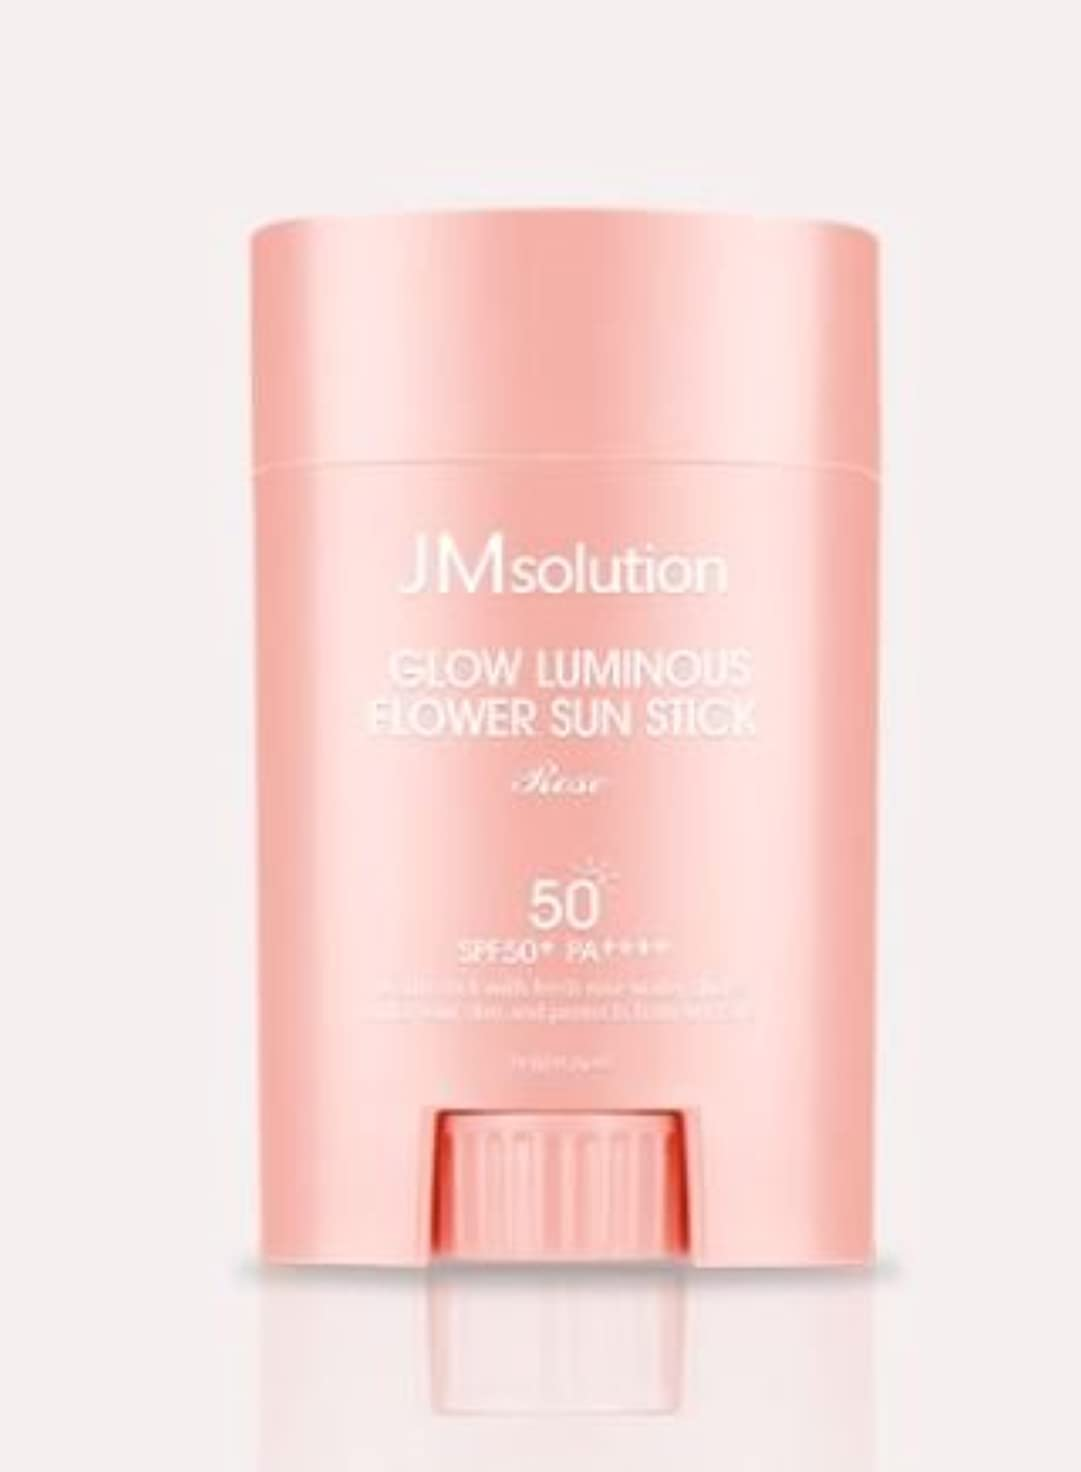 内なる欠乏ズボン[JMsolution] Glow Luminous Flower Sun Stick Rose 21g SPF50+ PA++++ [並行輸入品]